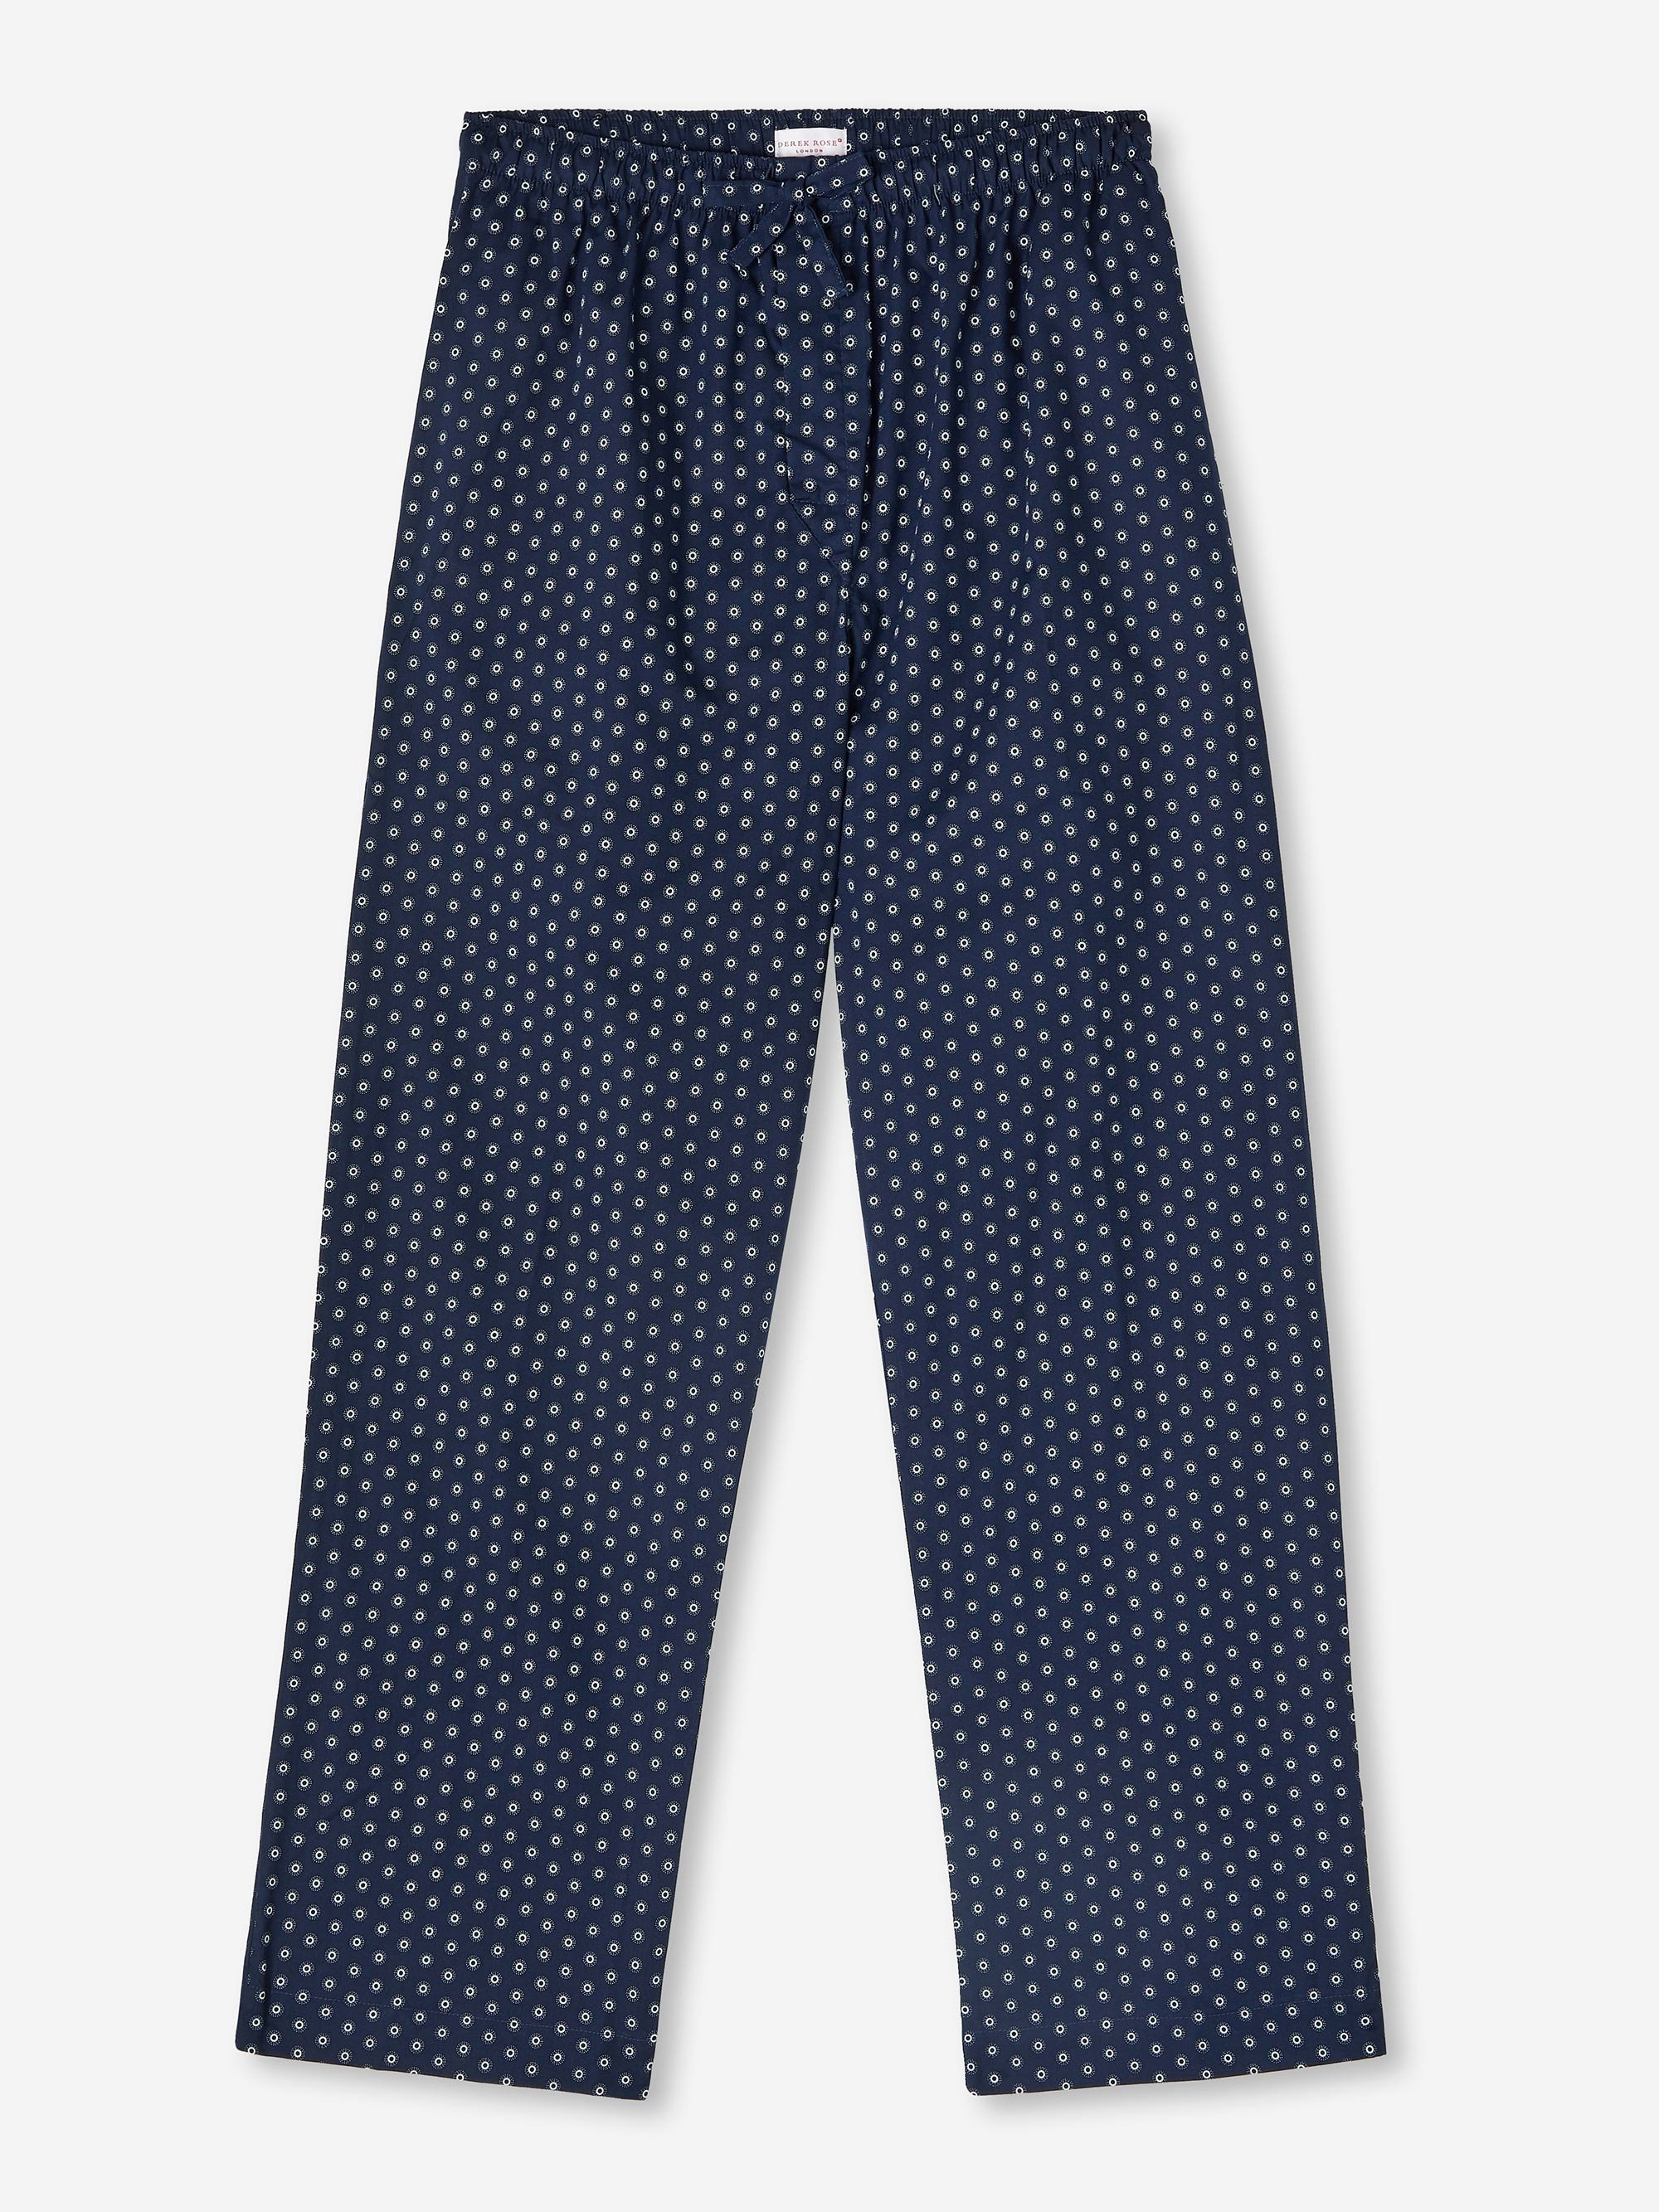 Men's Lounge Trousers Nelson 78 Cotton Batiste Navy